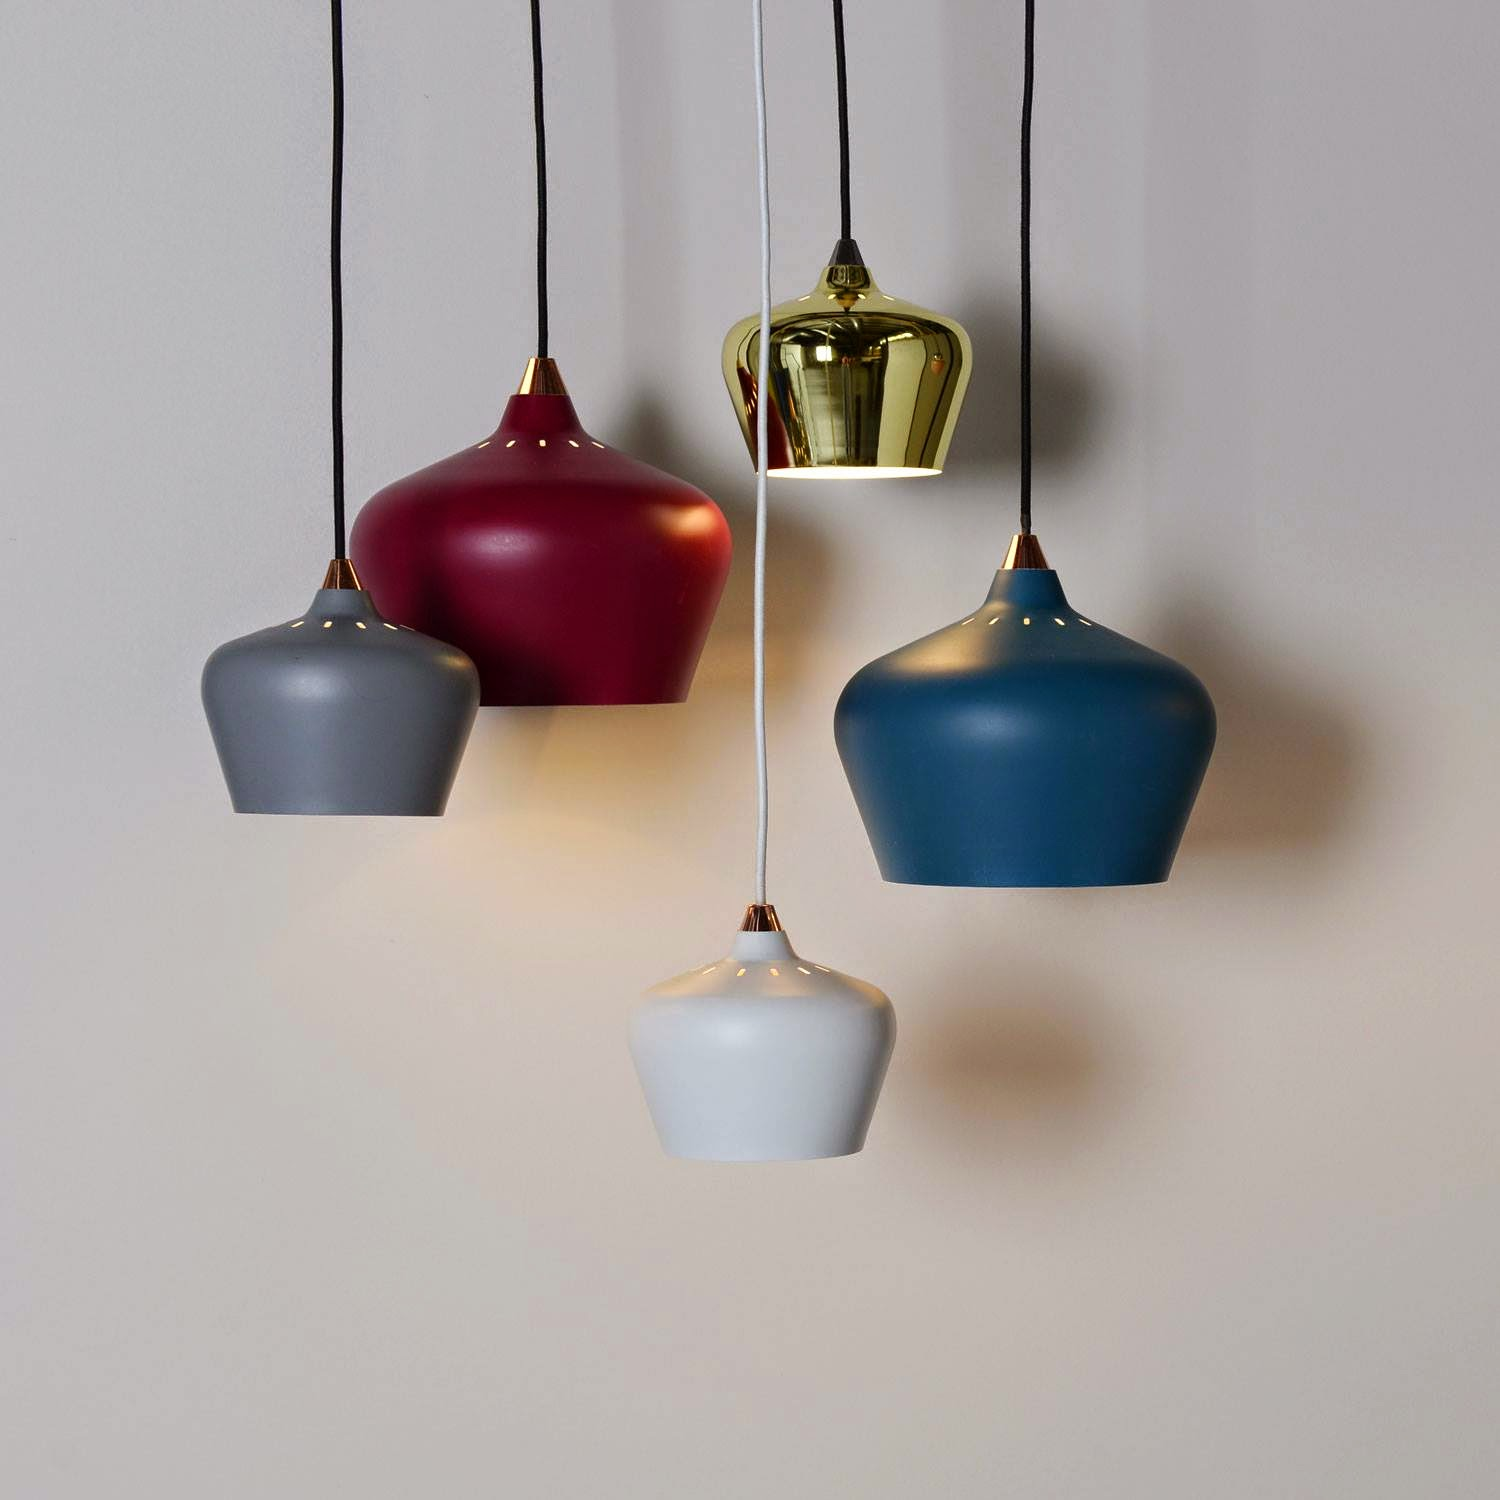 Retrotrace Vintage How to brighten up dull January days with Heal's lighting sale